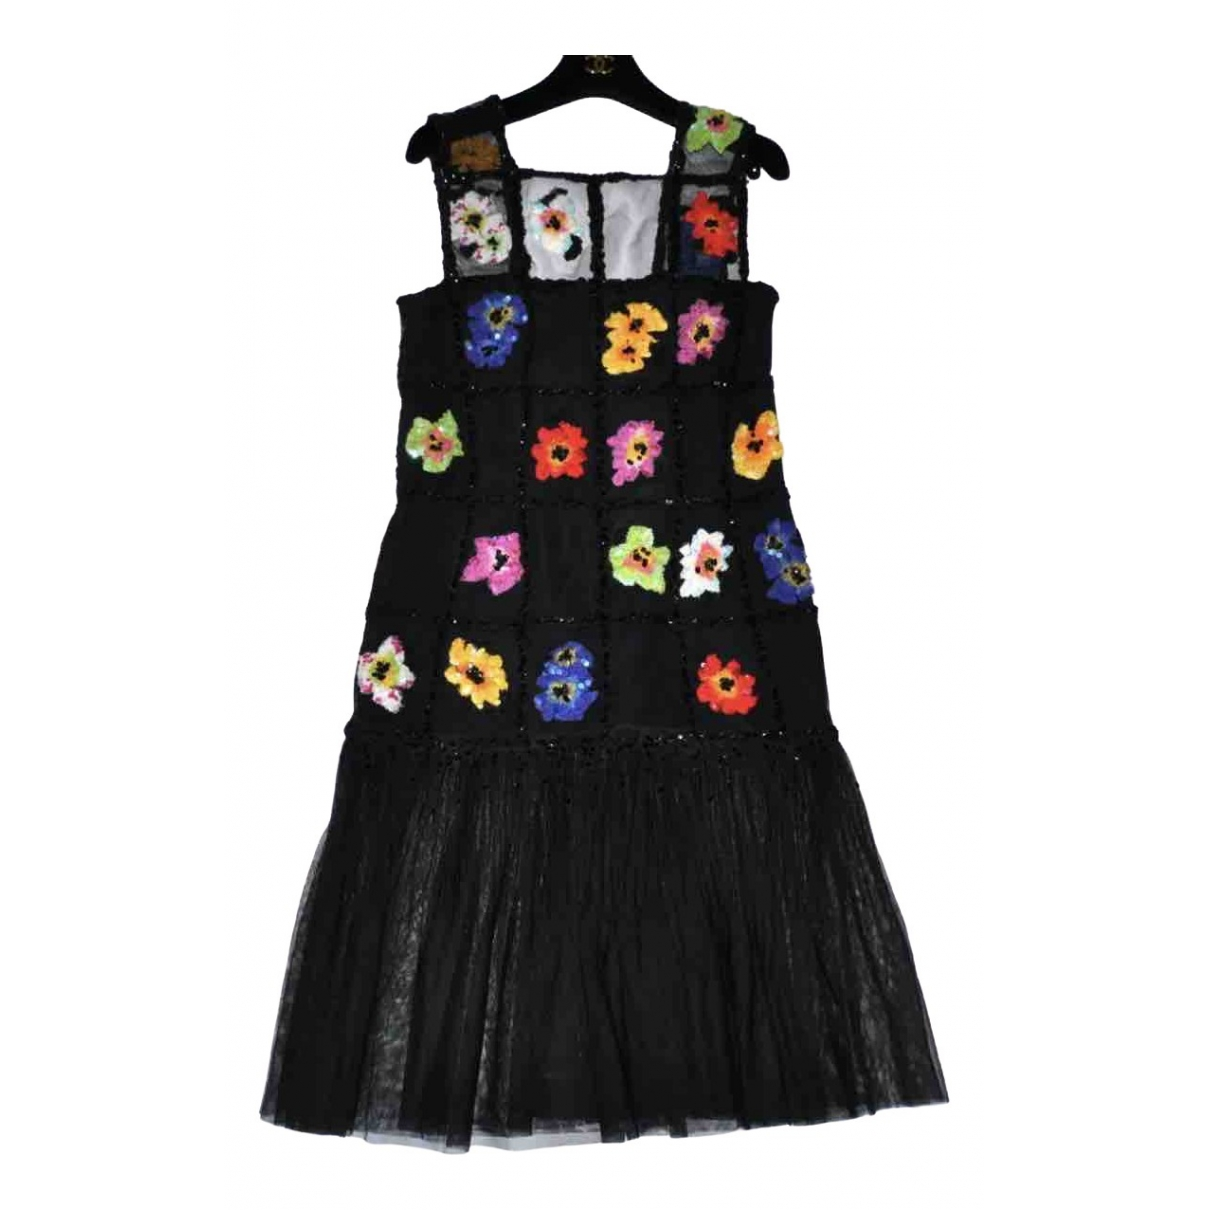 Chanel \N Kleid in  Schwarz Synthetik